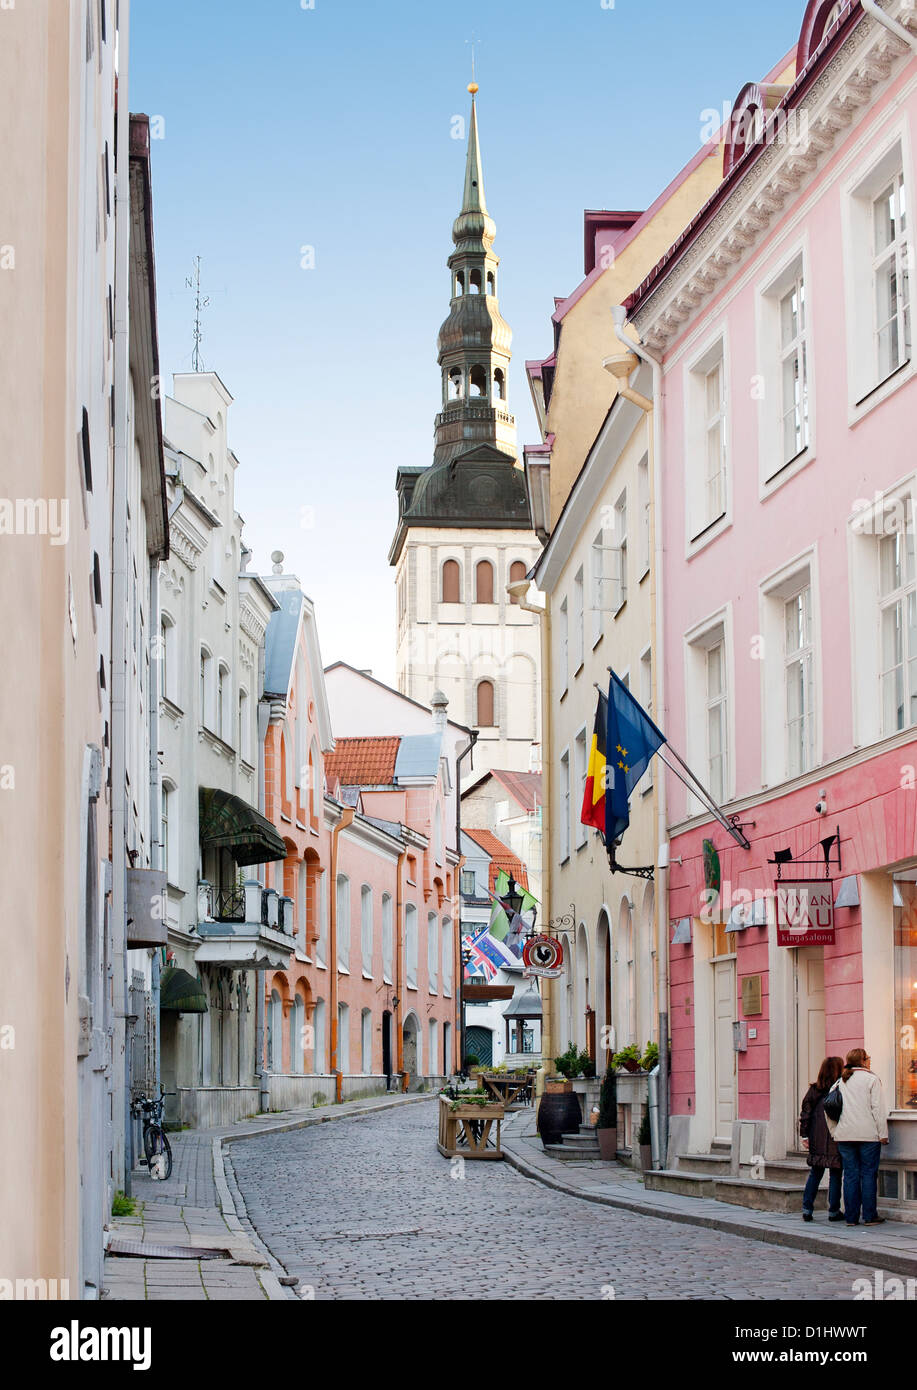 View of St. Nicholas' Church steeple from a street in the old town in Tallinn, the capital of Estonia. - Stock Image